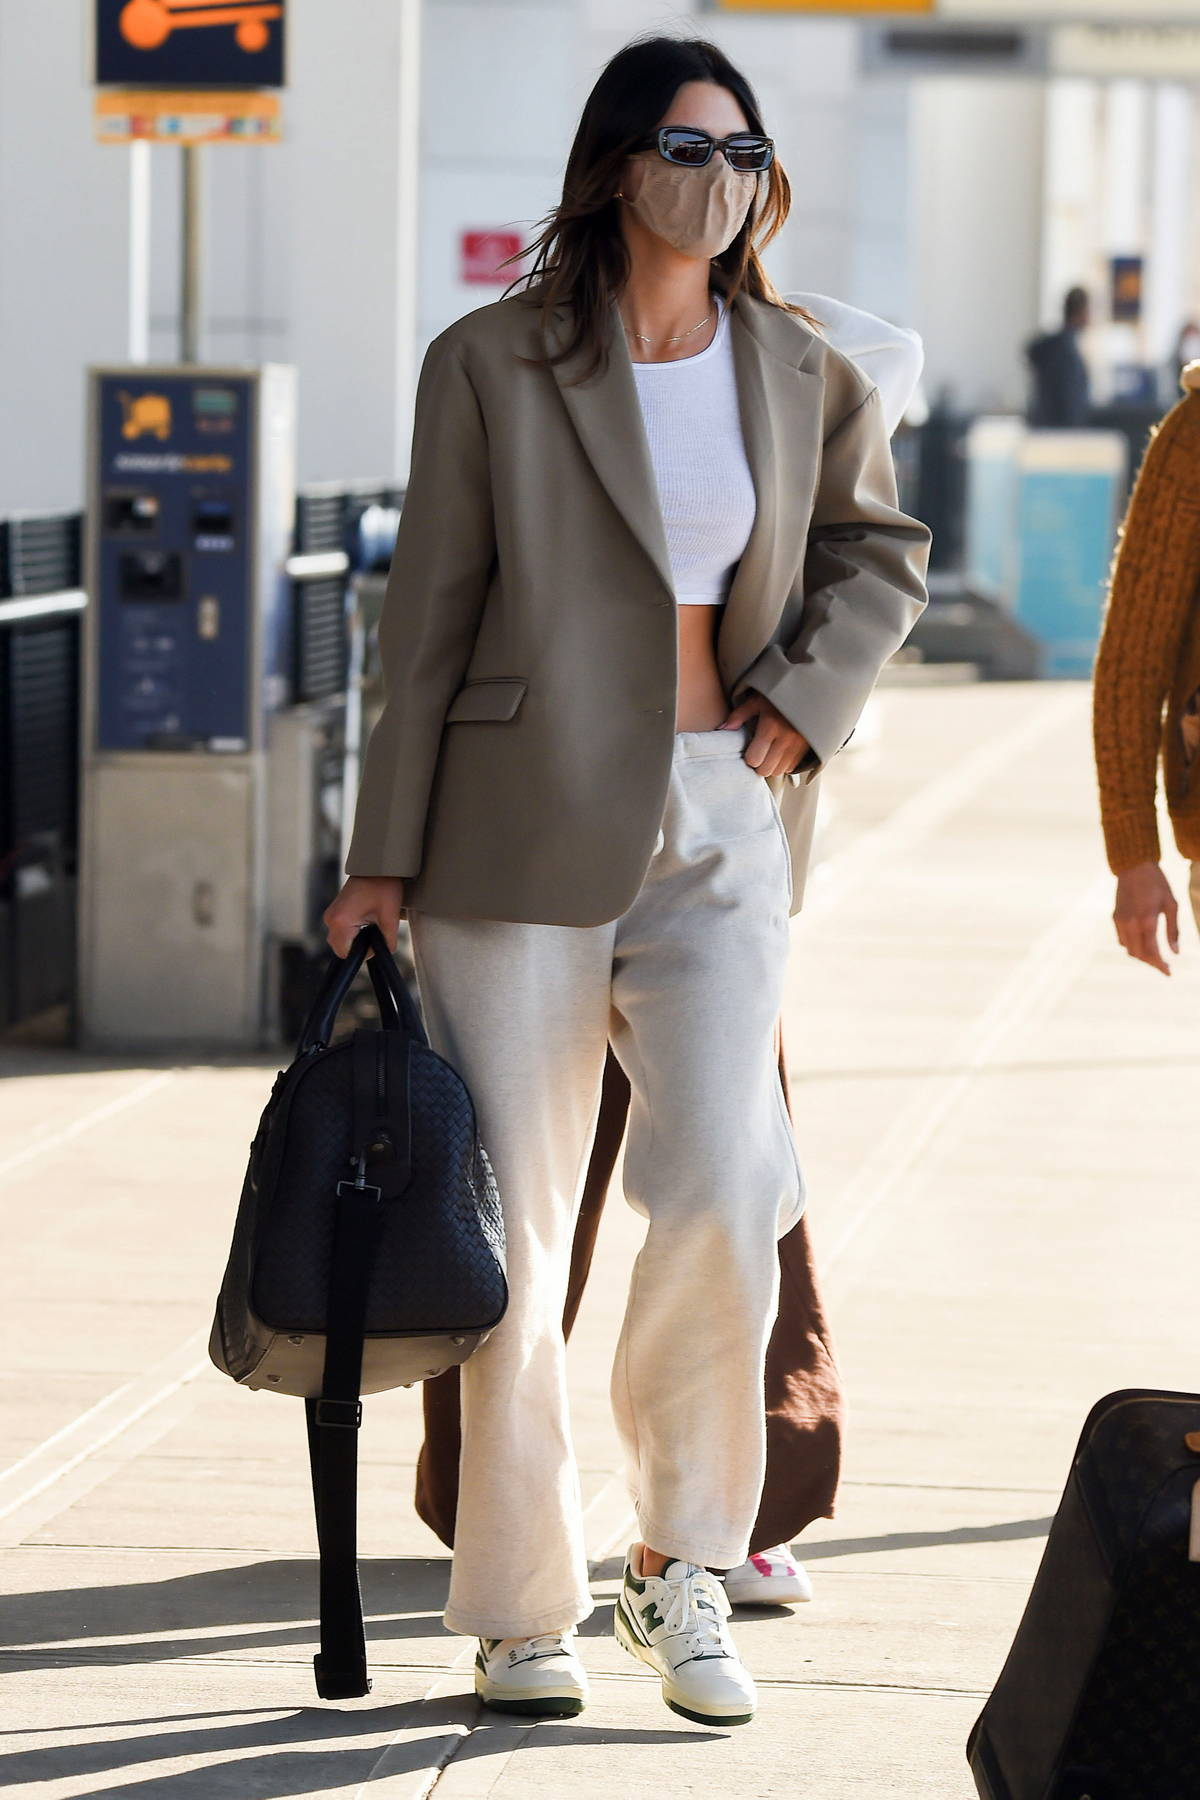 Kendall Jenner looks casually chic in a blazer over a crop top as she arrives at the JFK Airport in New York